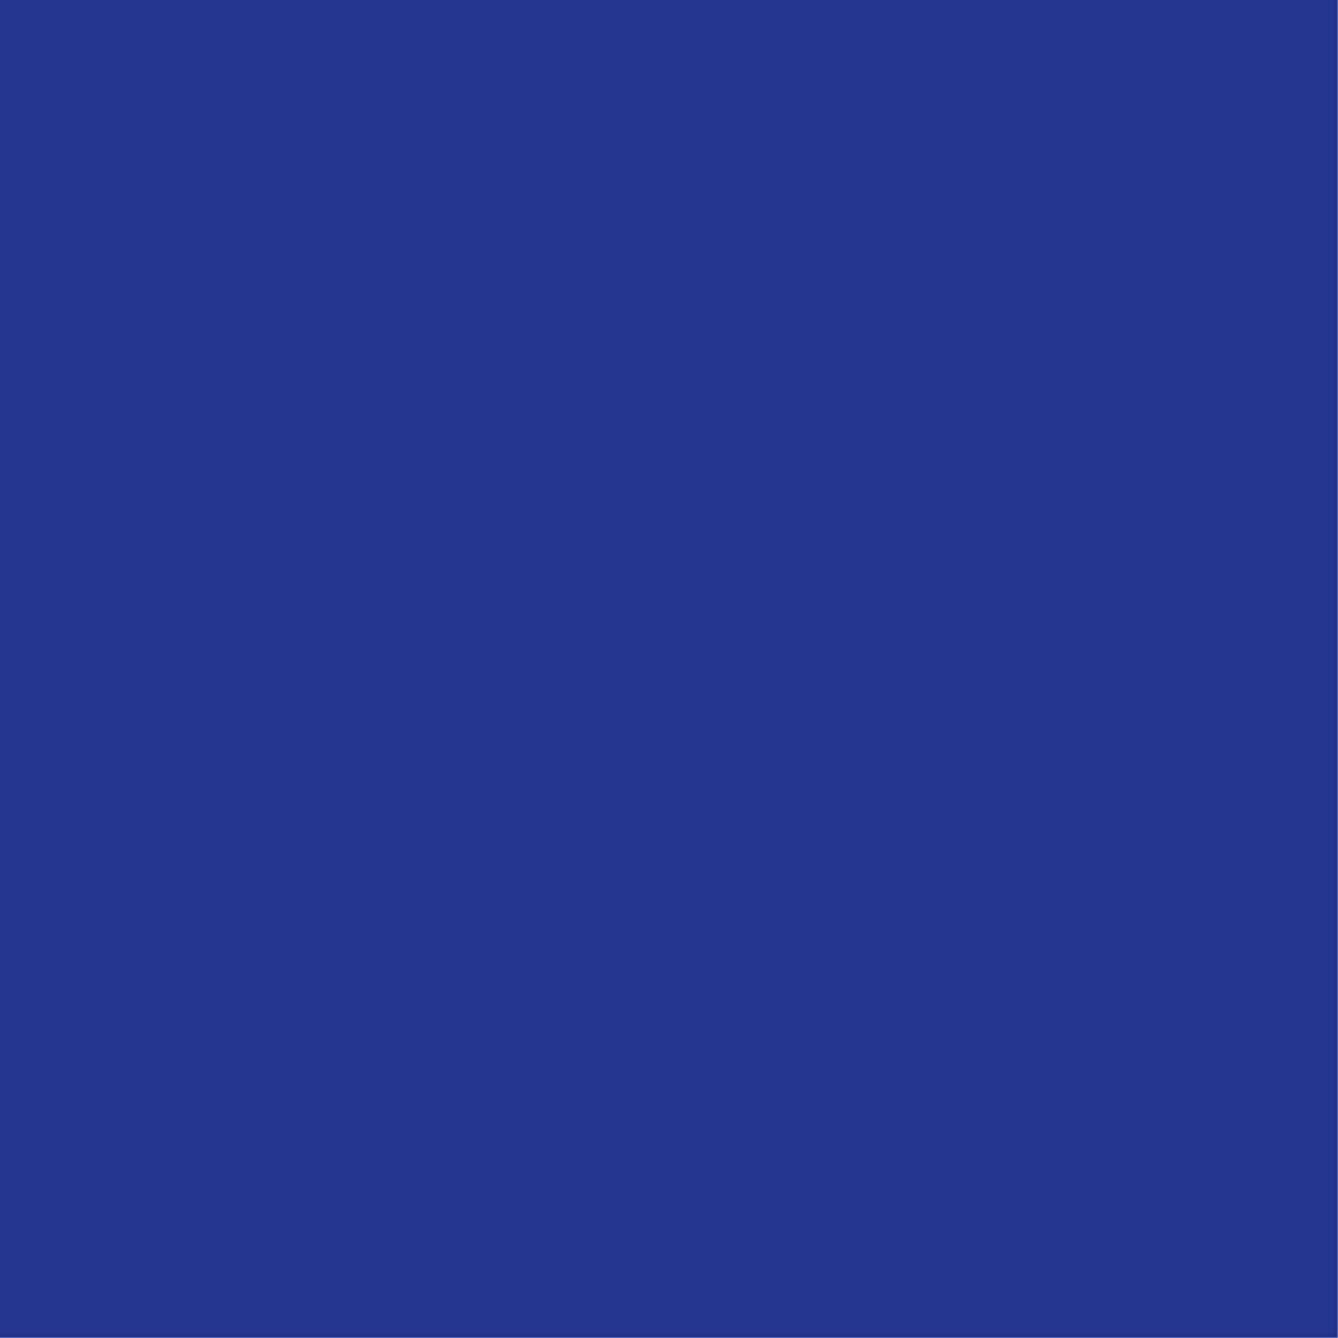 Jillson Roberts 6-Roll Count All-Occasion Matte Finish Gift Wrap Available in 22 Solid Colors, Royal Blue